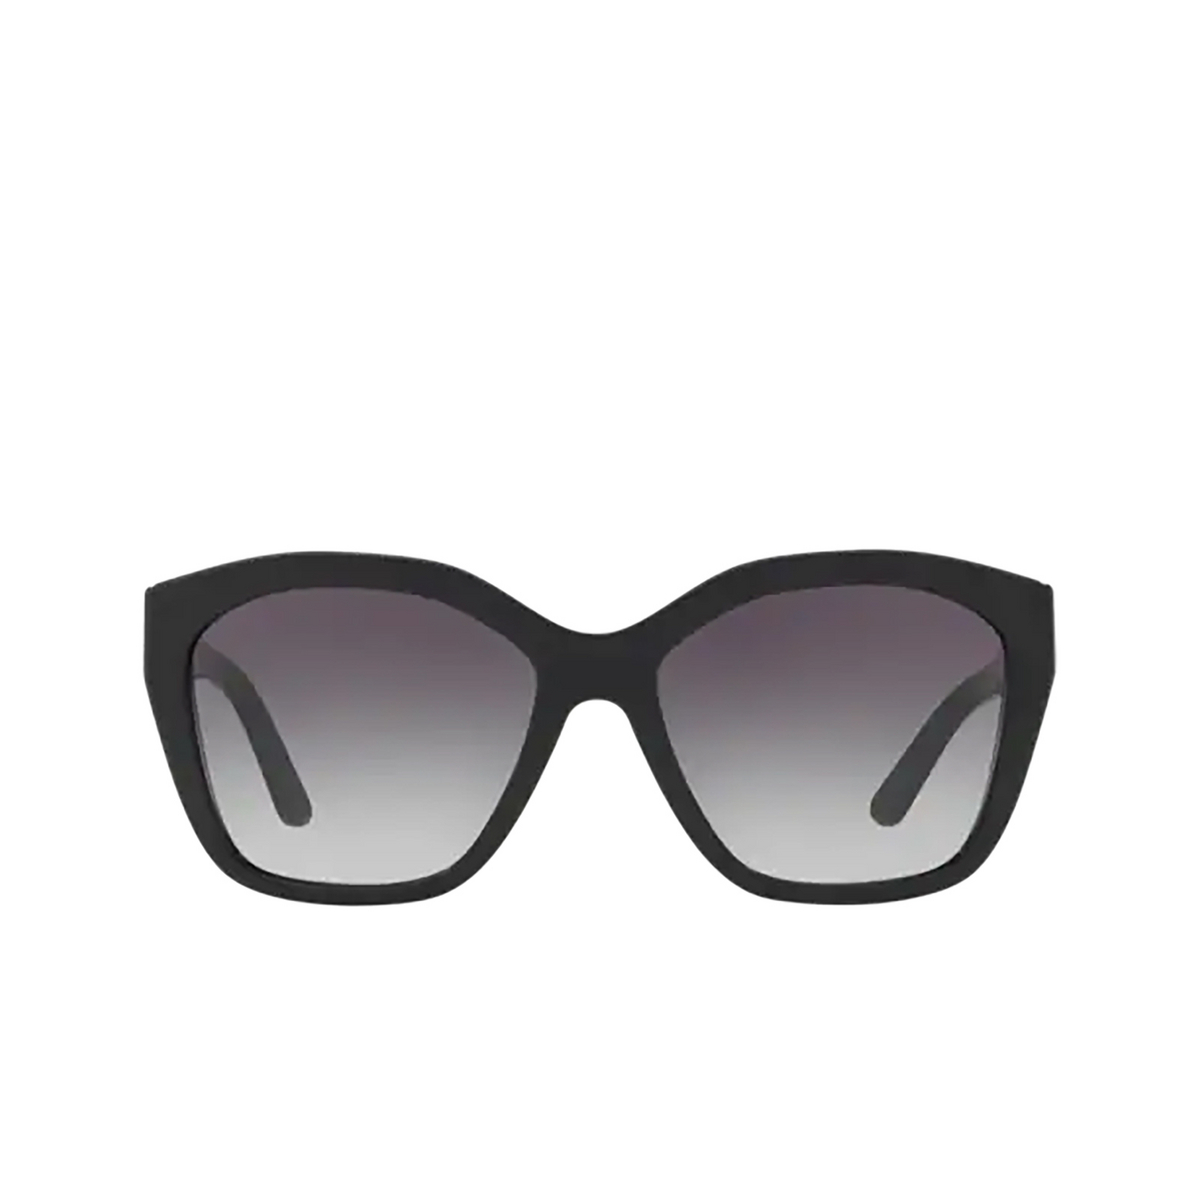 Burberry® Irregular Sunglasses: BE4261 color Black 30018G - front view.